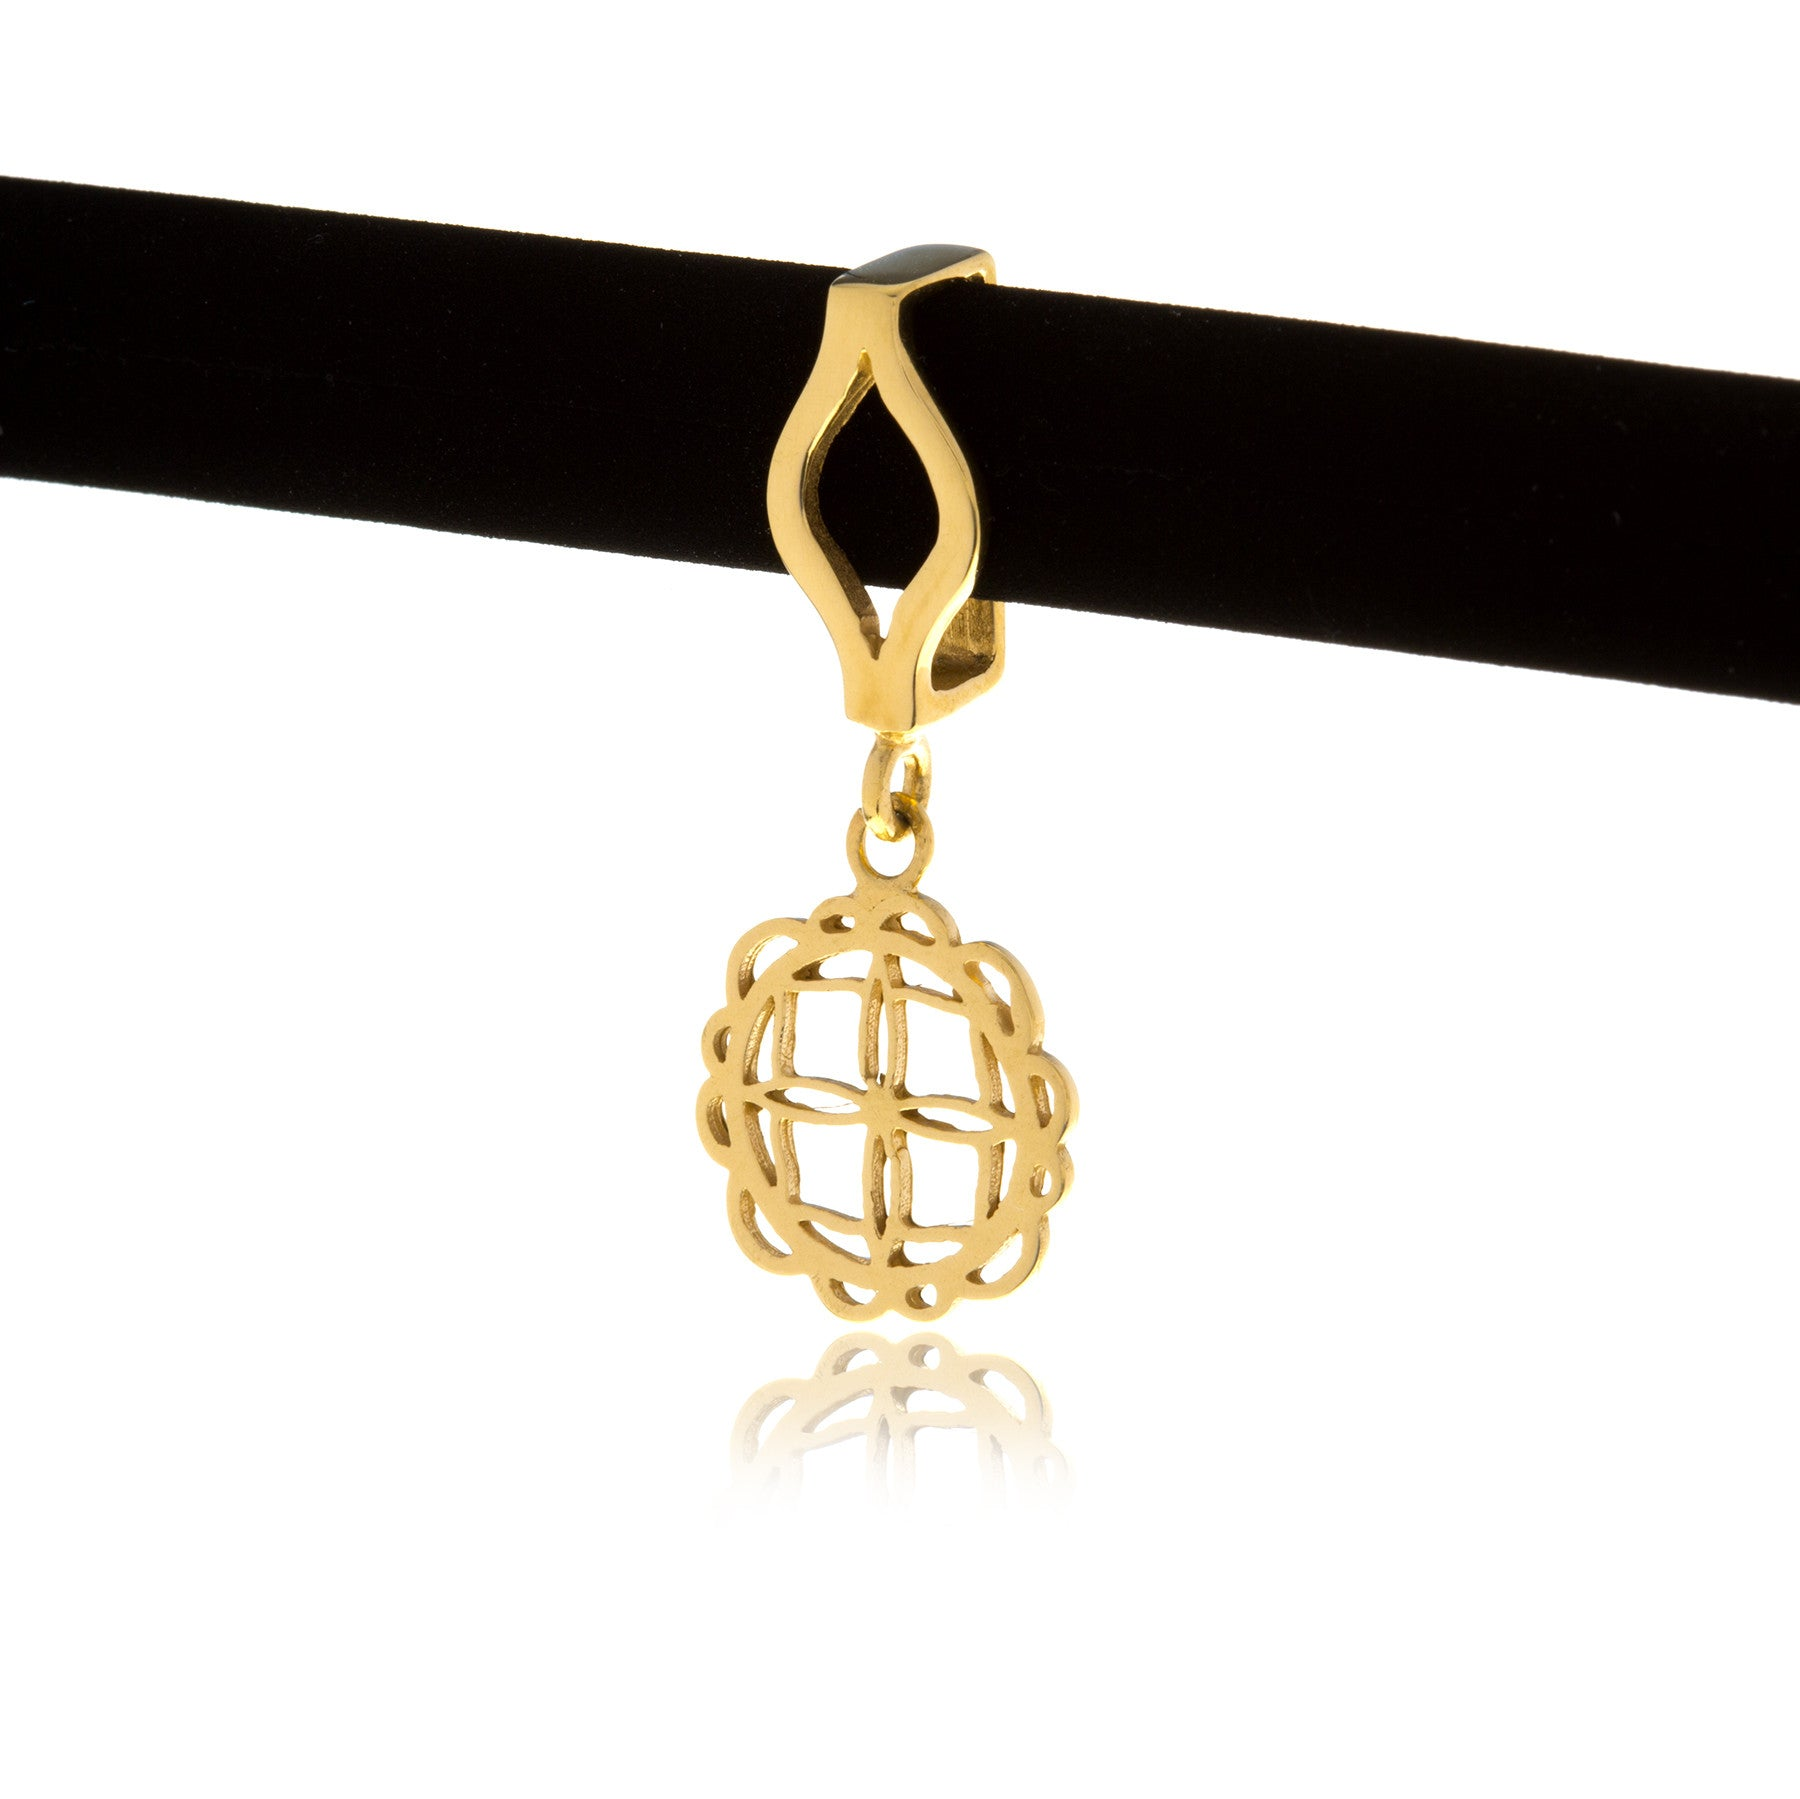 Signature Gold Flower Charm with Choker - MCK Brands